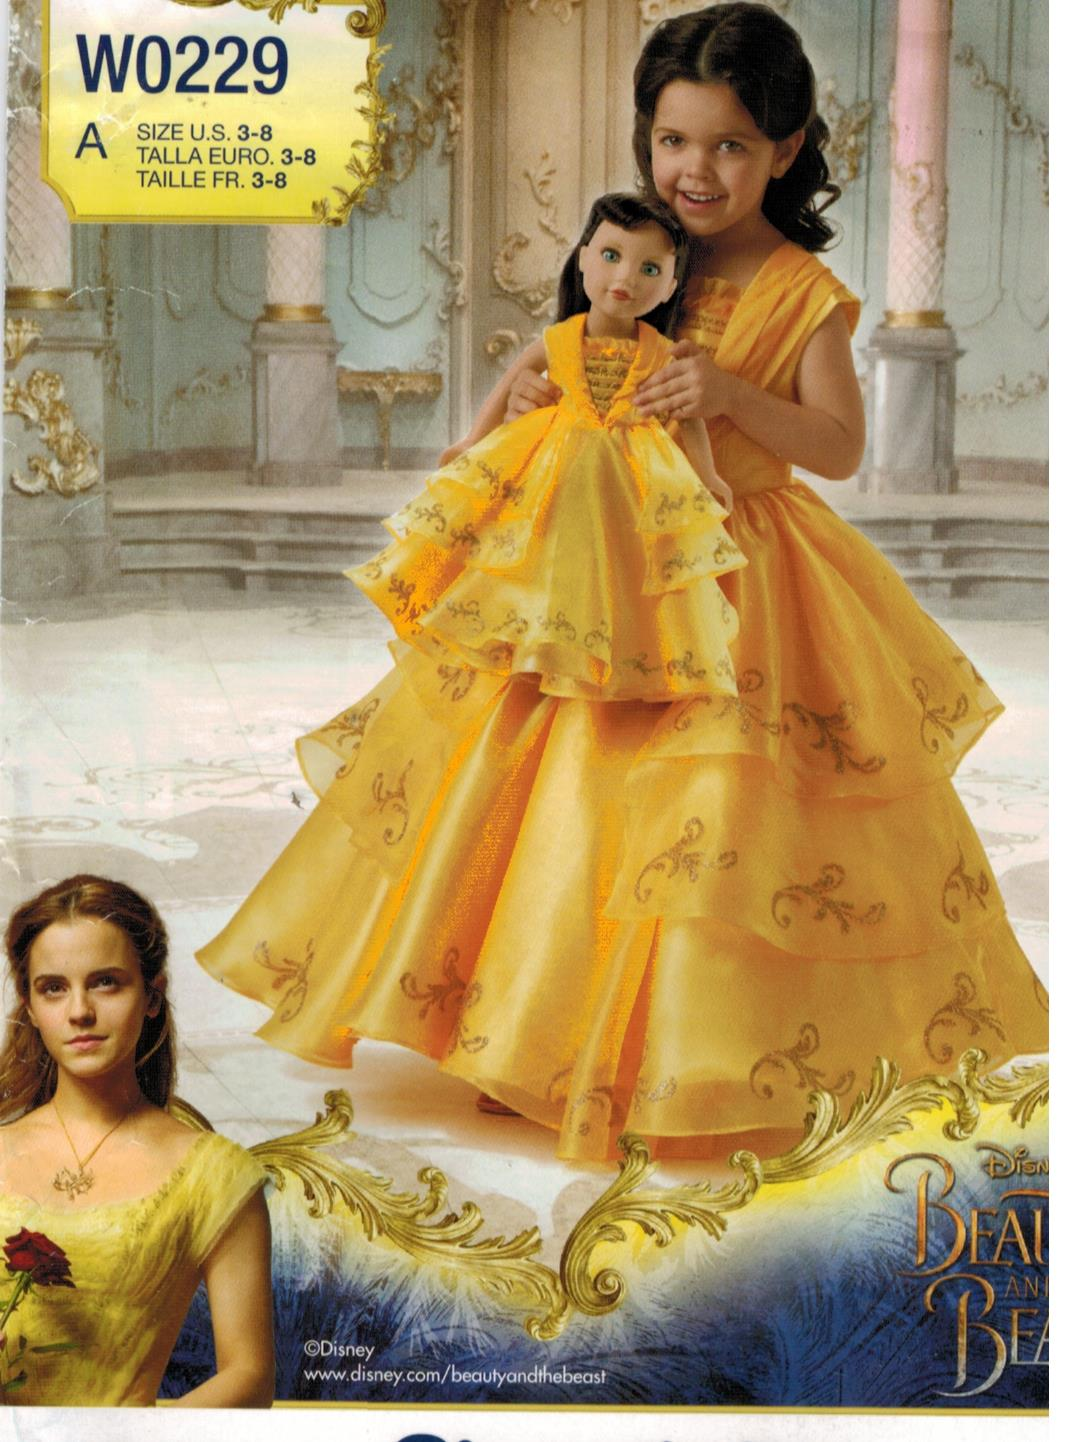 Simplicity Pattern 8405 Disney Princess Belle Beauty And The Beast Costume For Girls Size 3 8 And 18 Dolls Sewing Pattern Heaven